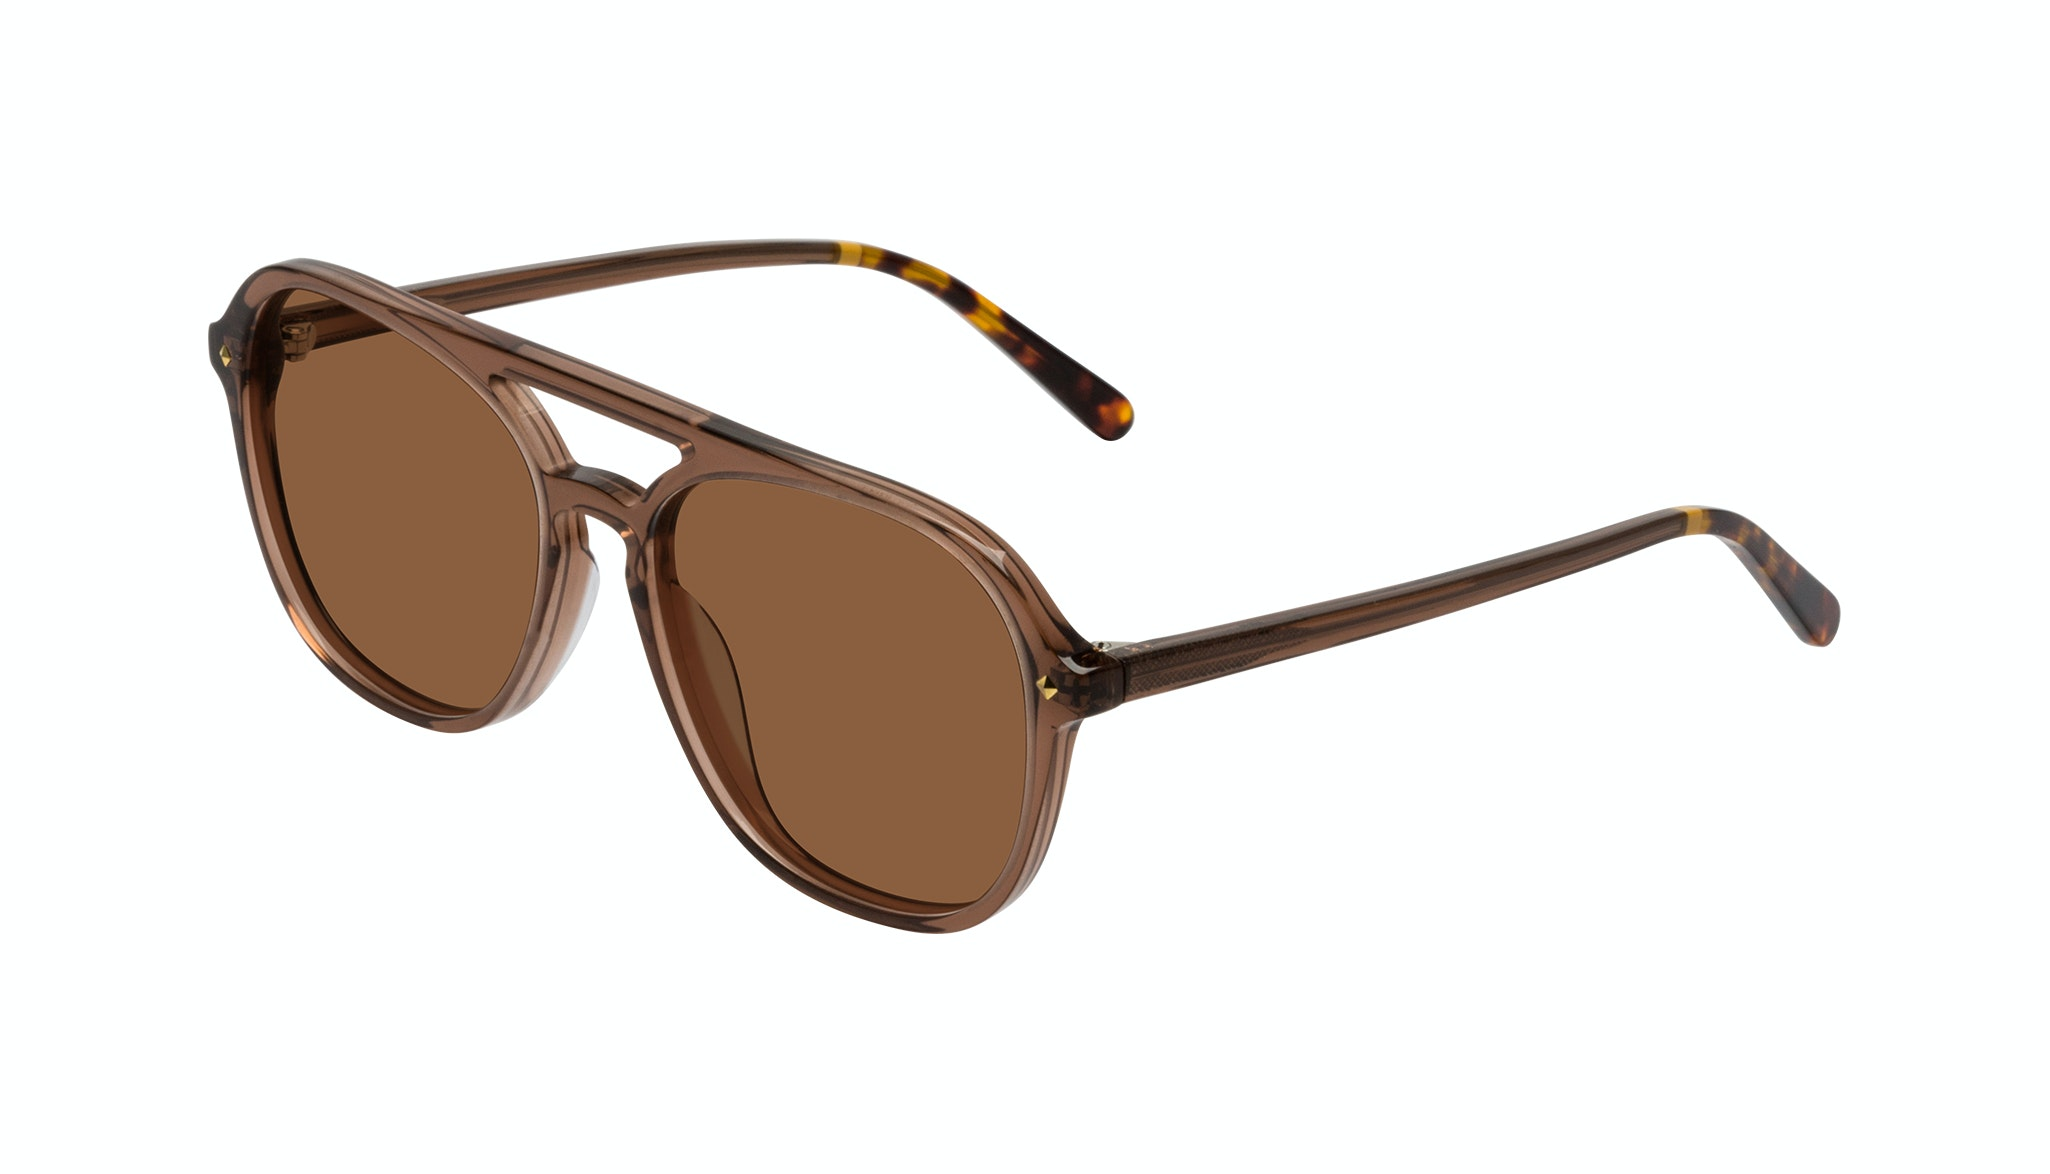 Affordable Fashion Glasses Aviator Sunglasses Women Jerry Terra Tilt